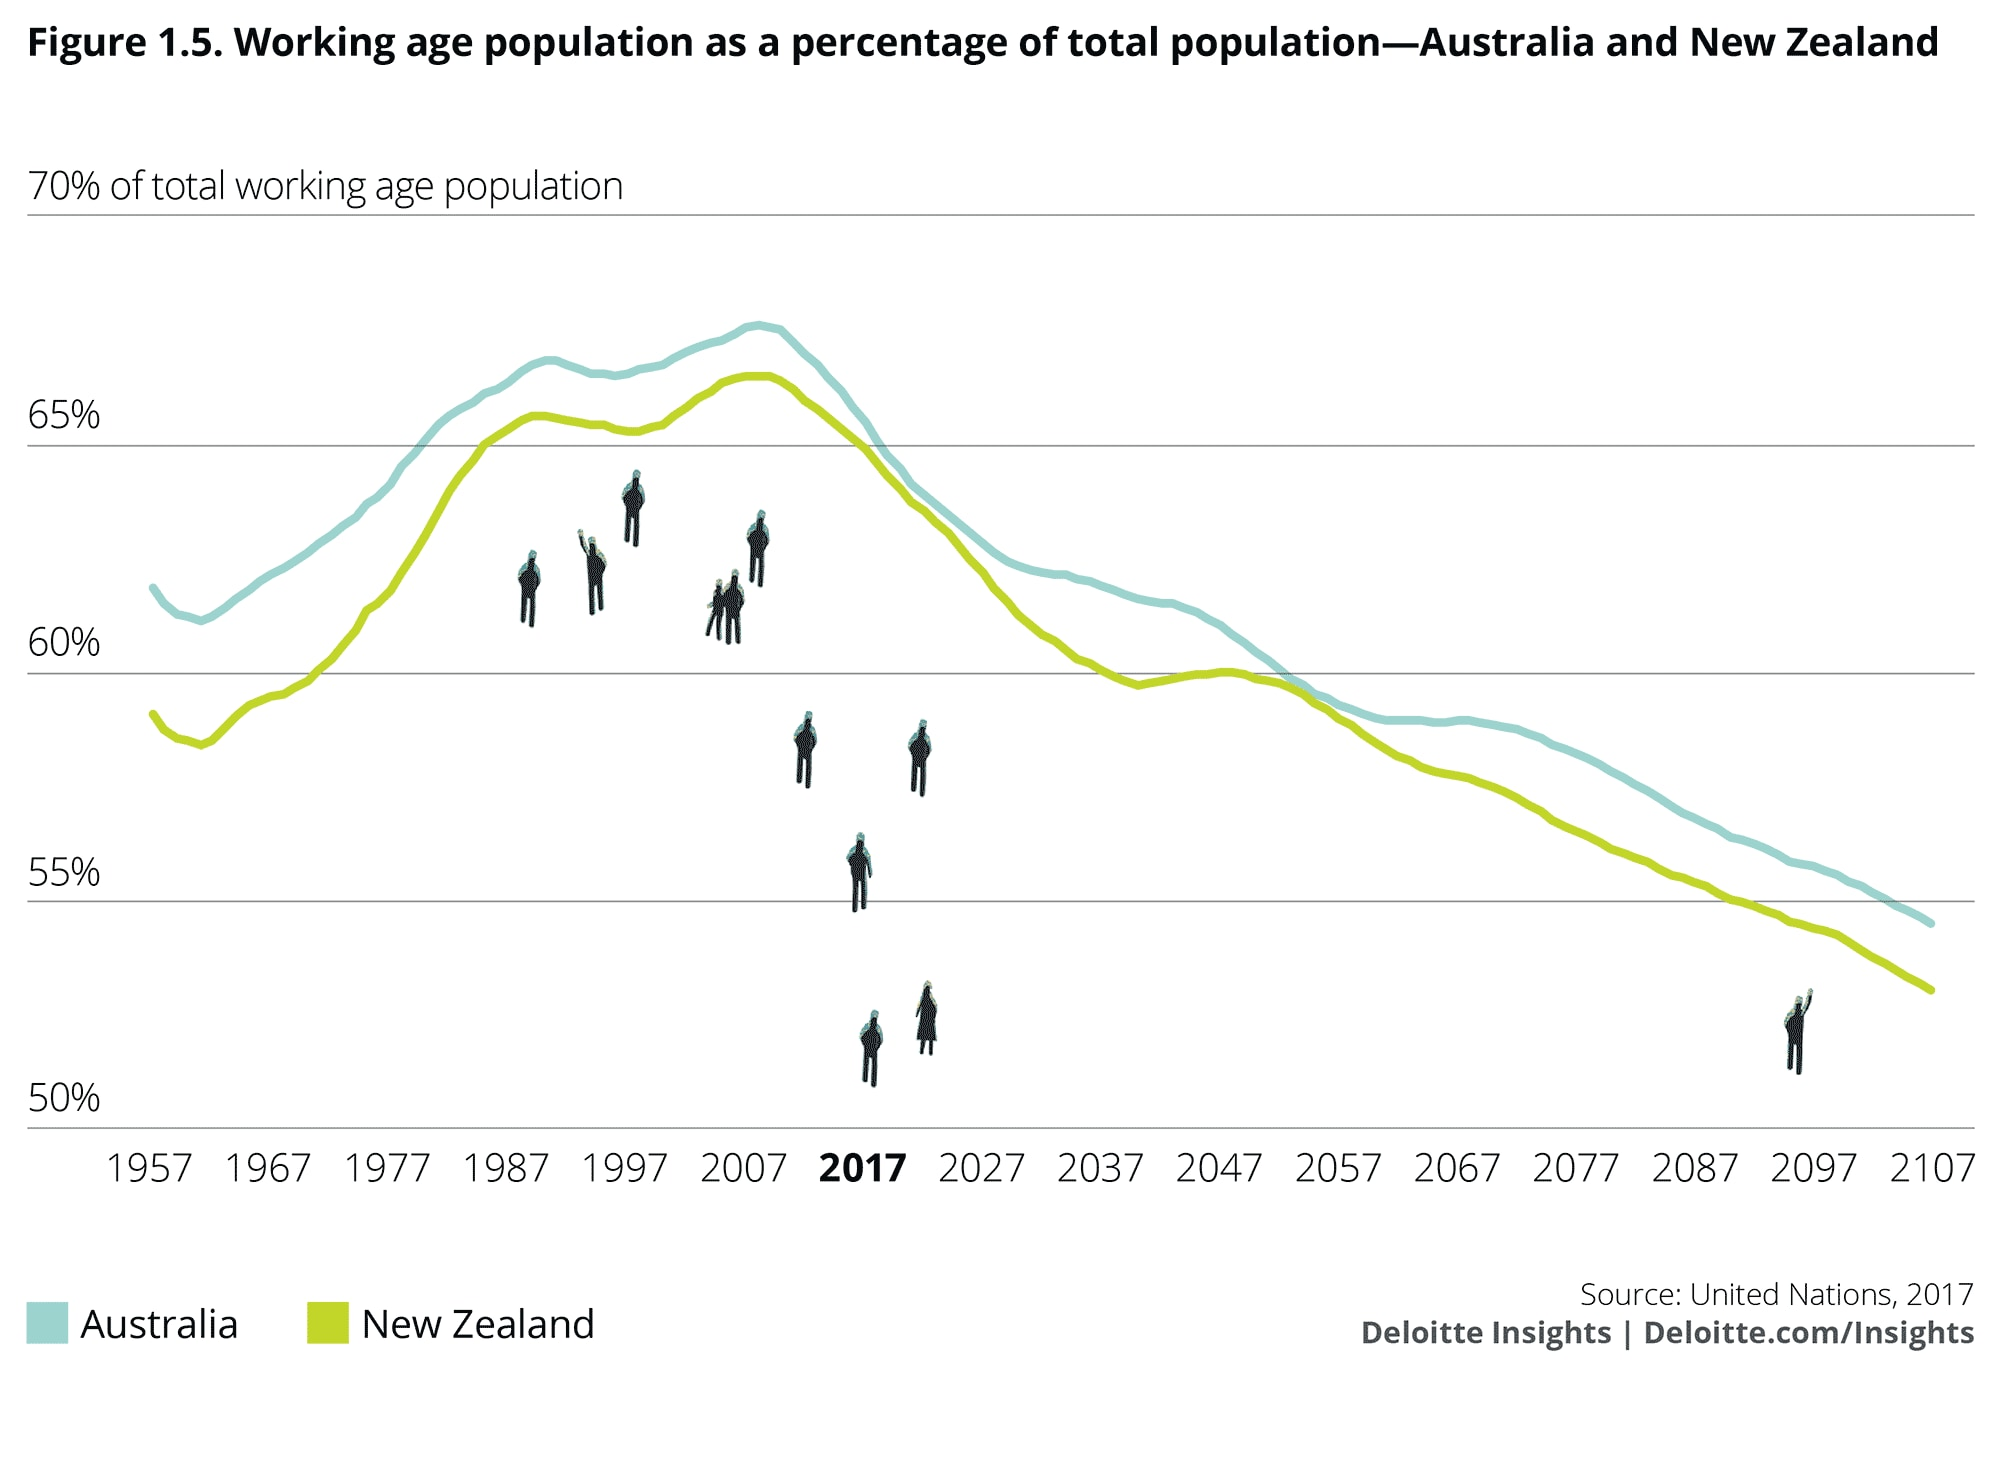 Working age population as a percentage of total population: Australia and New Zealand